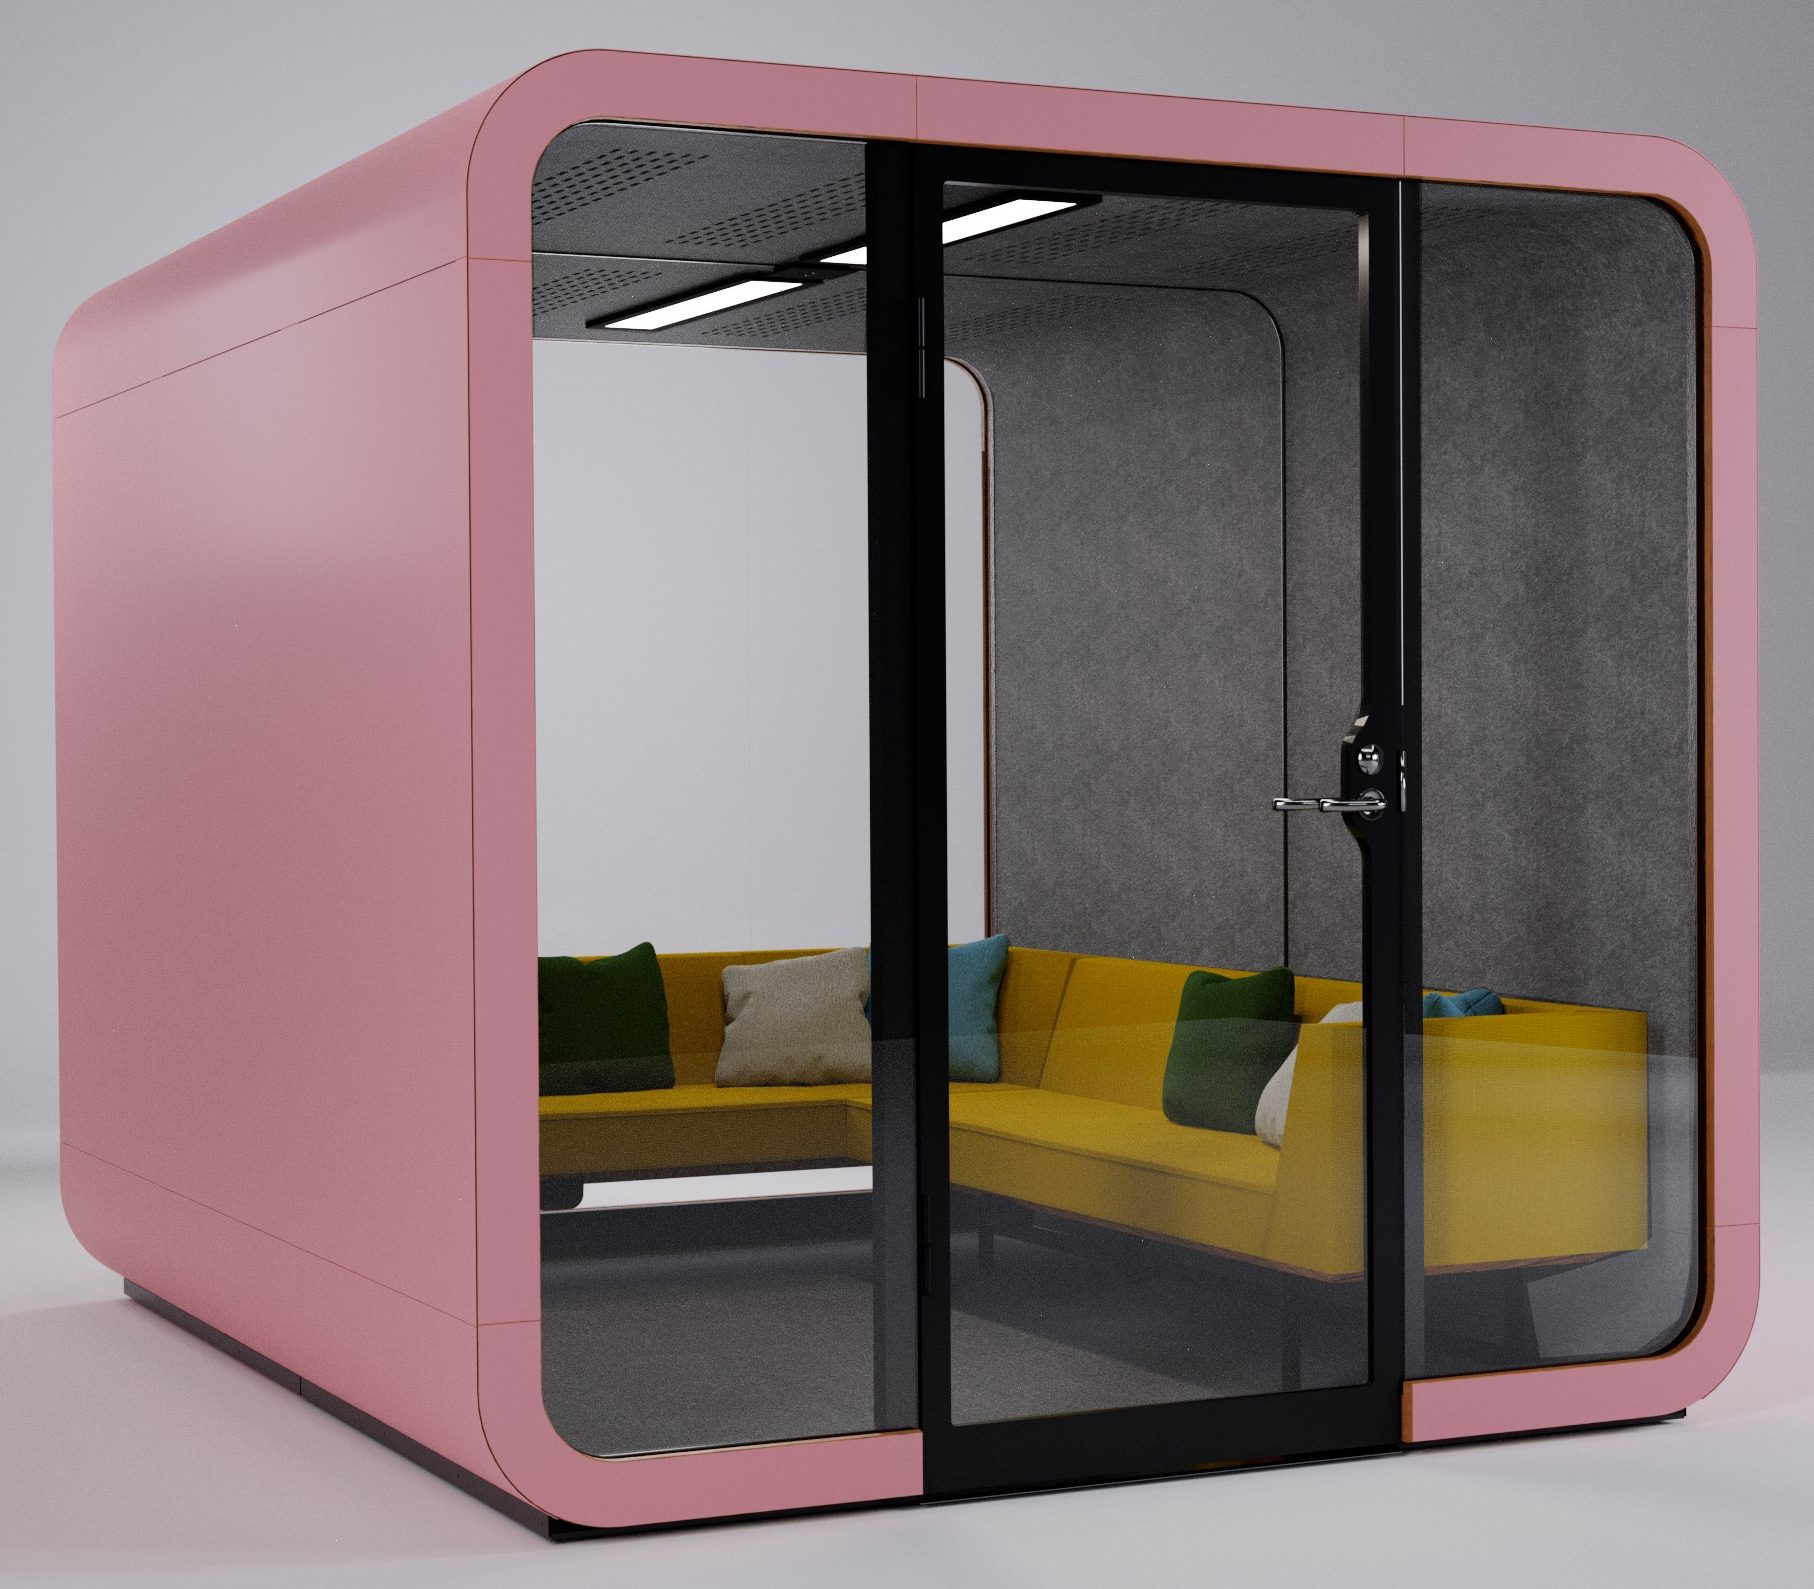 Pink Framery 2Q acoustic meeting pod with new L-shaped sofa